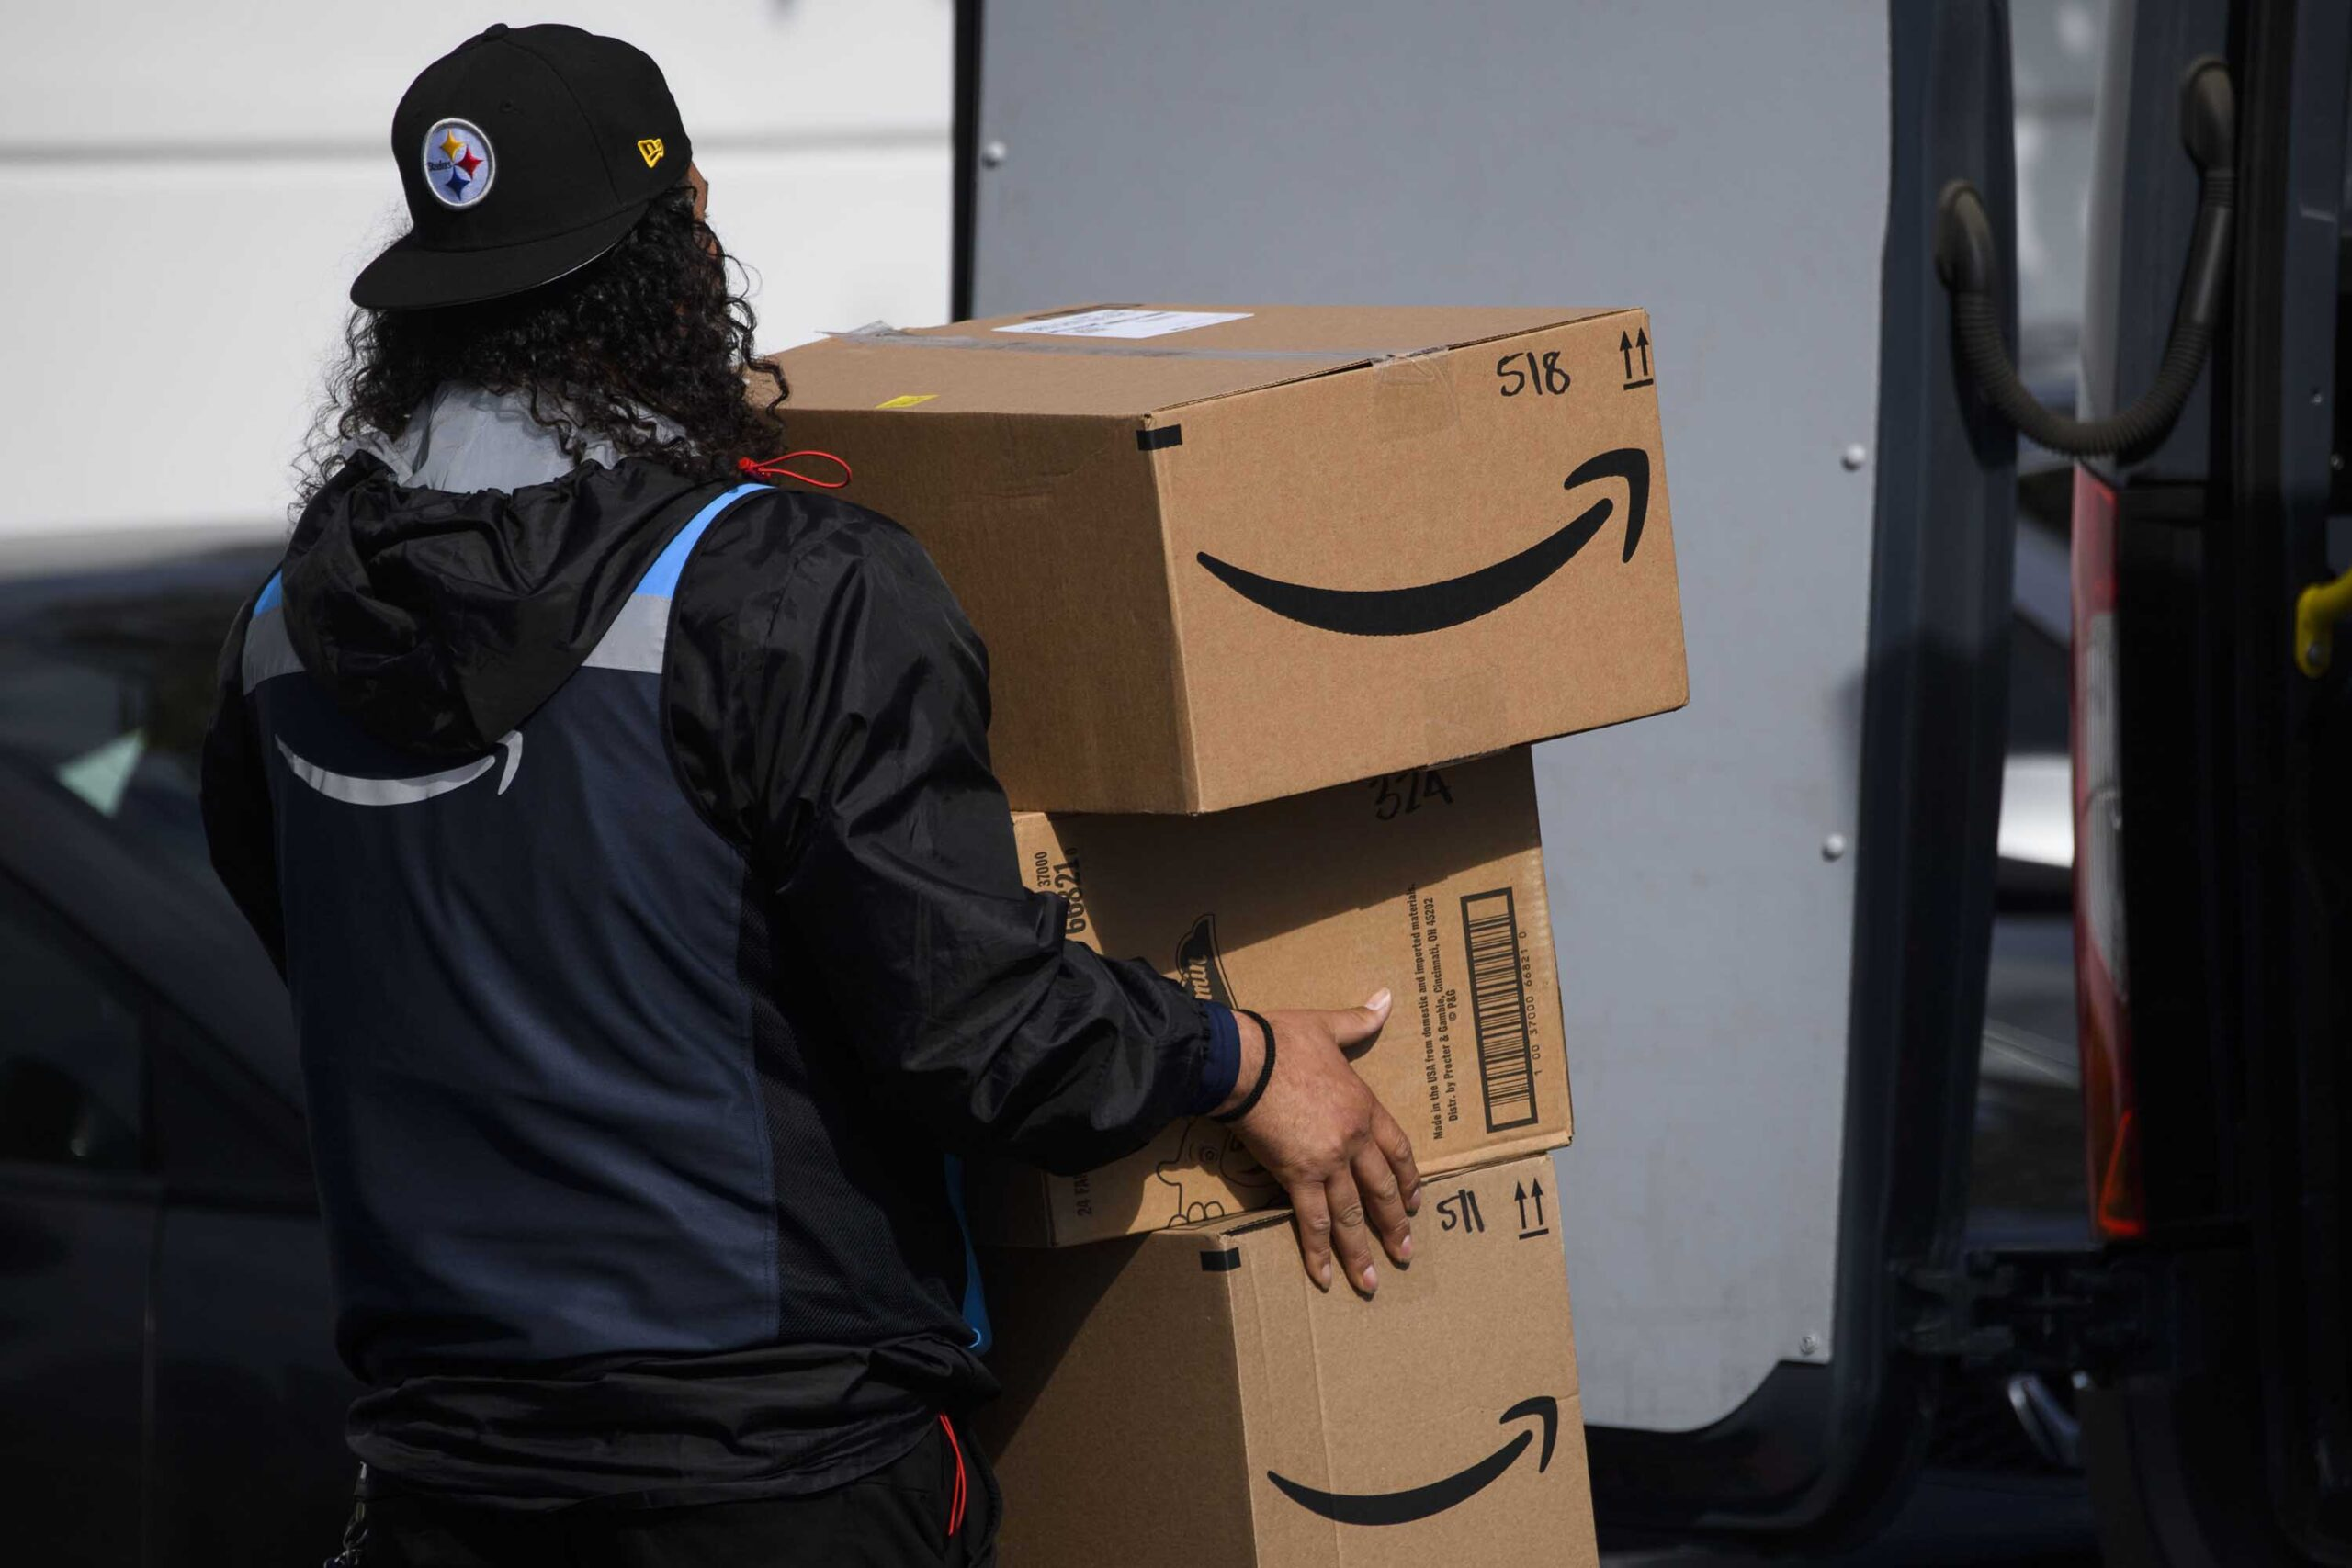 <i>PATRICK T. FALLON/AFP/Getty Images</i><br/>An Amazon.com Inc. delivery driver carries boxes into a van outside of a distribution facility on February 2 in Hawthorne